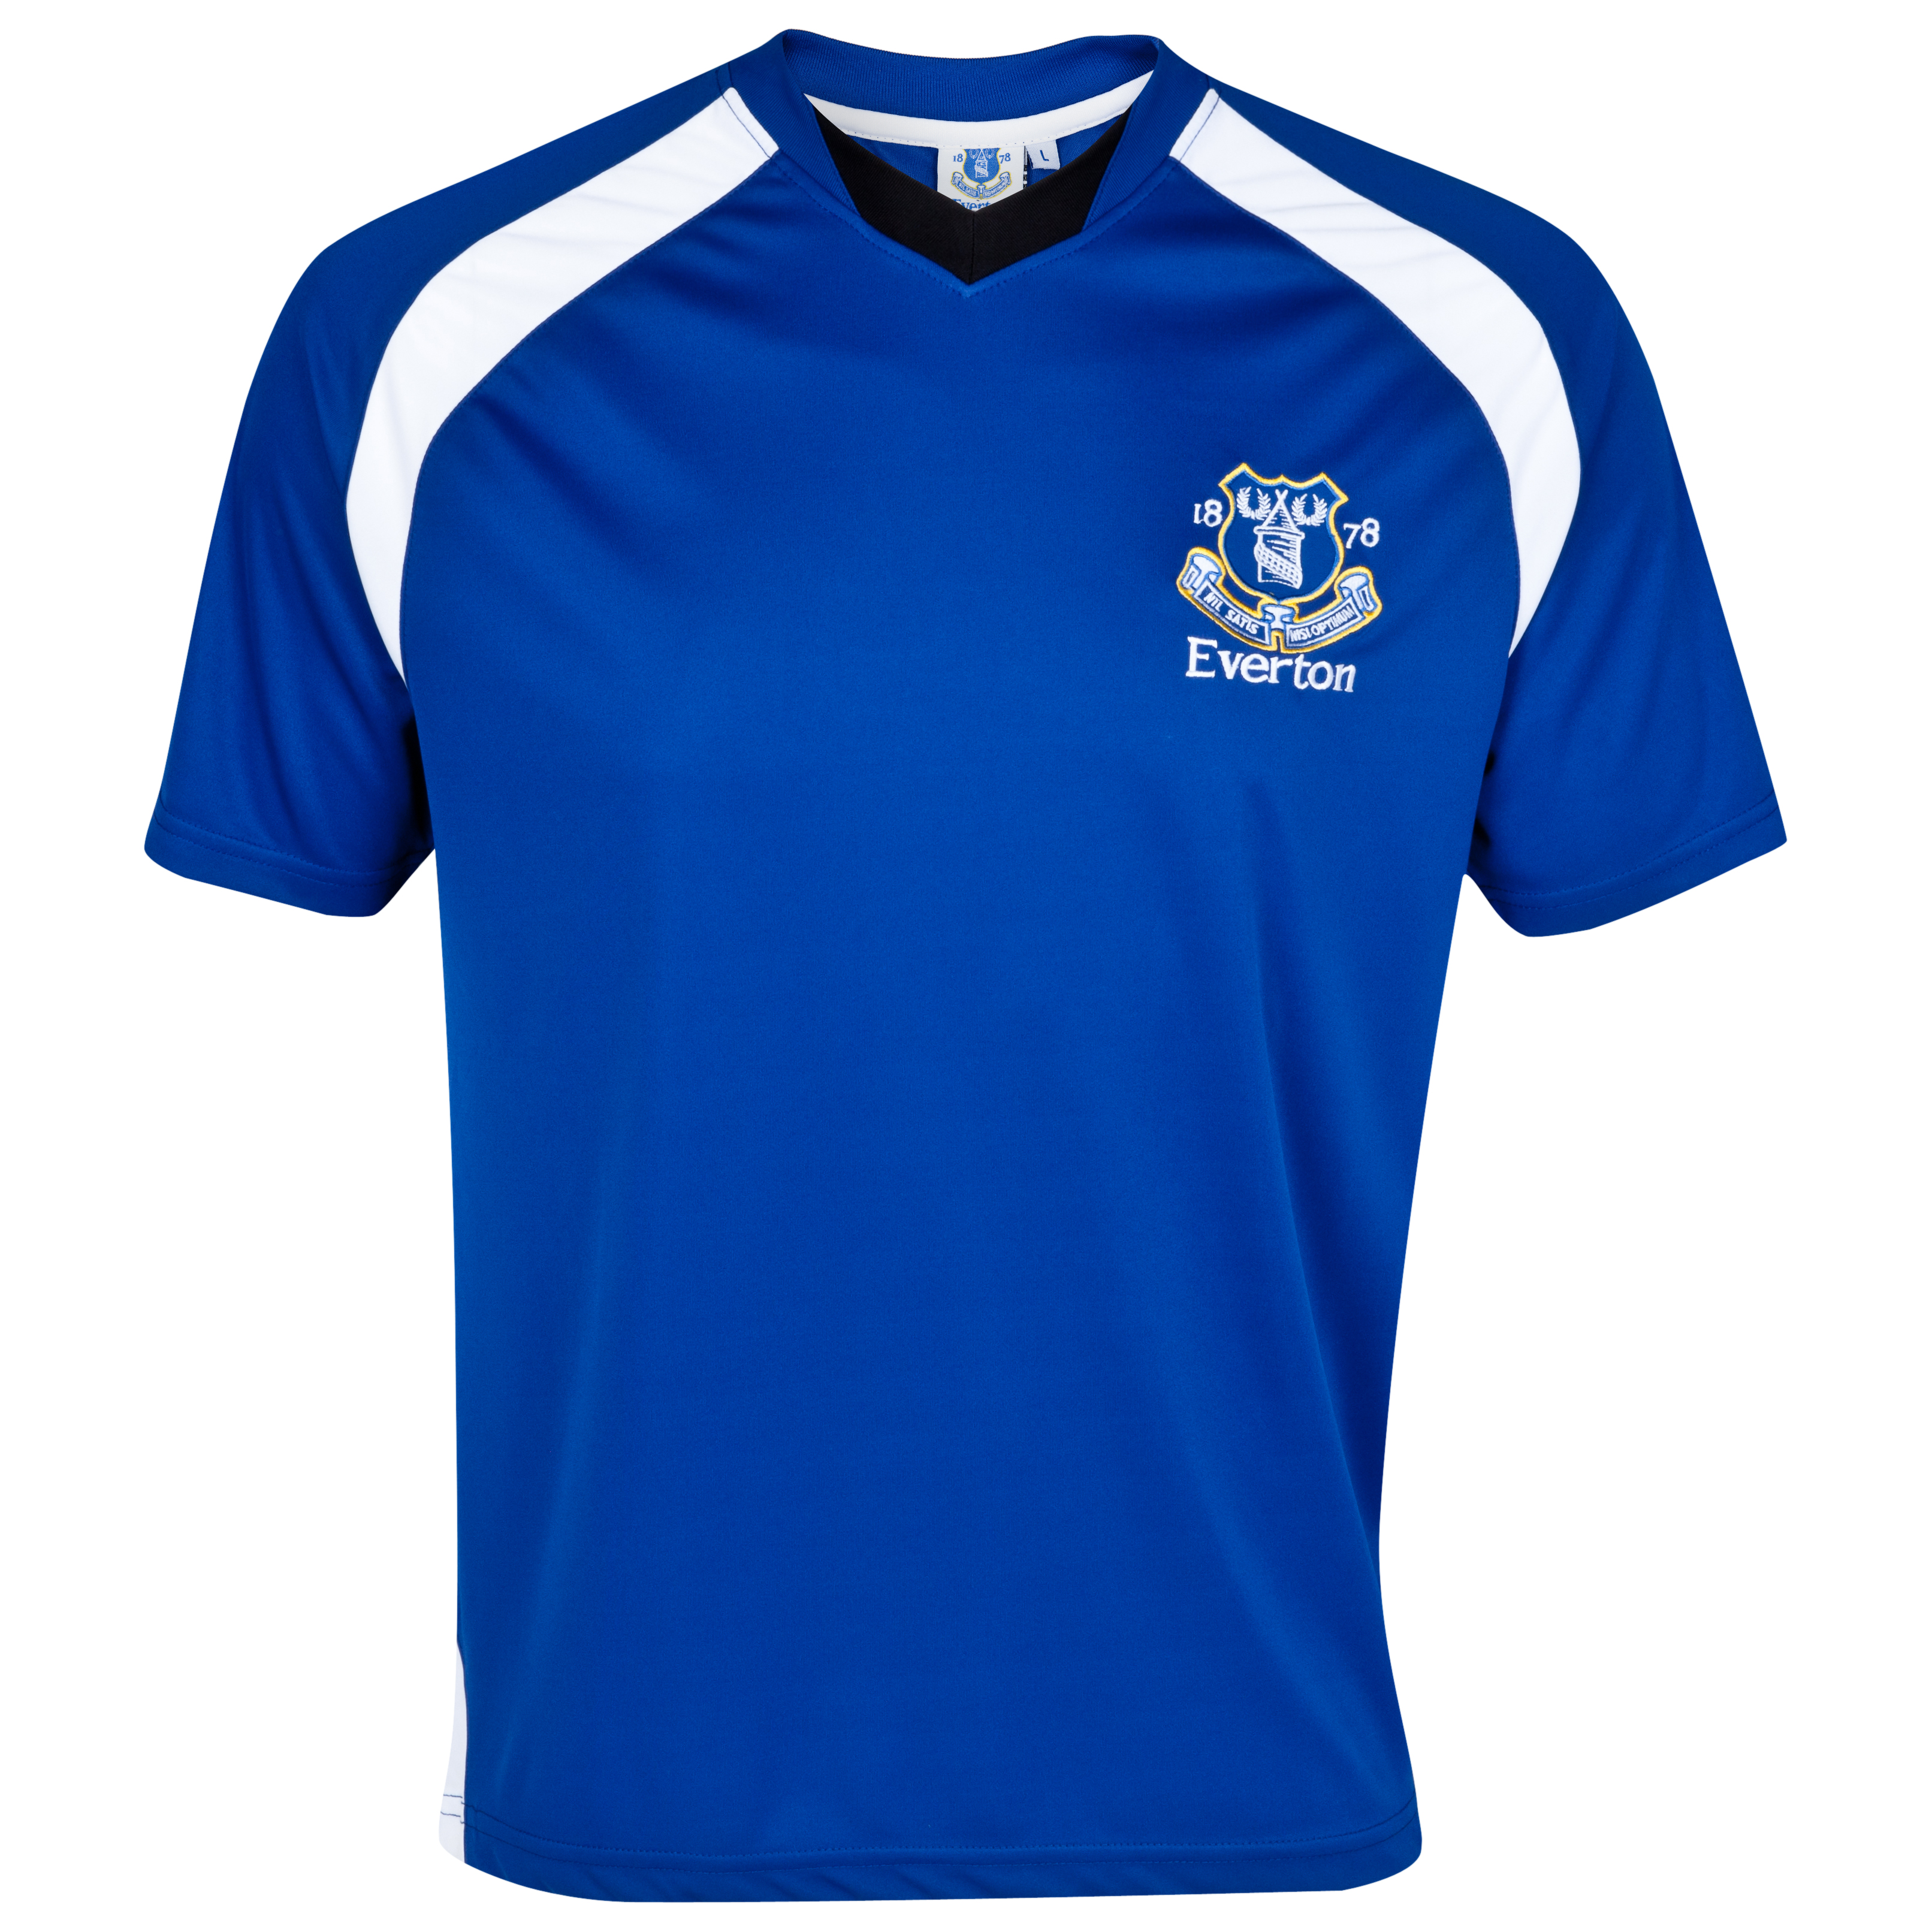 Everton Essential Compete V-Neck Panel T-Shirt - Everton Blue - Older Boys